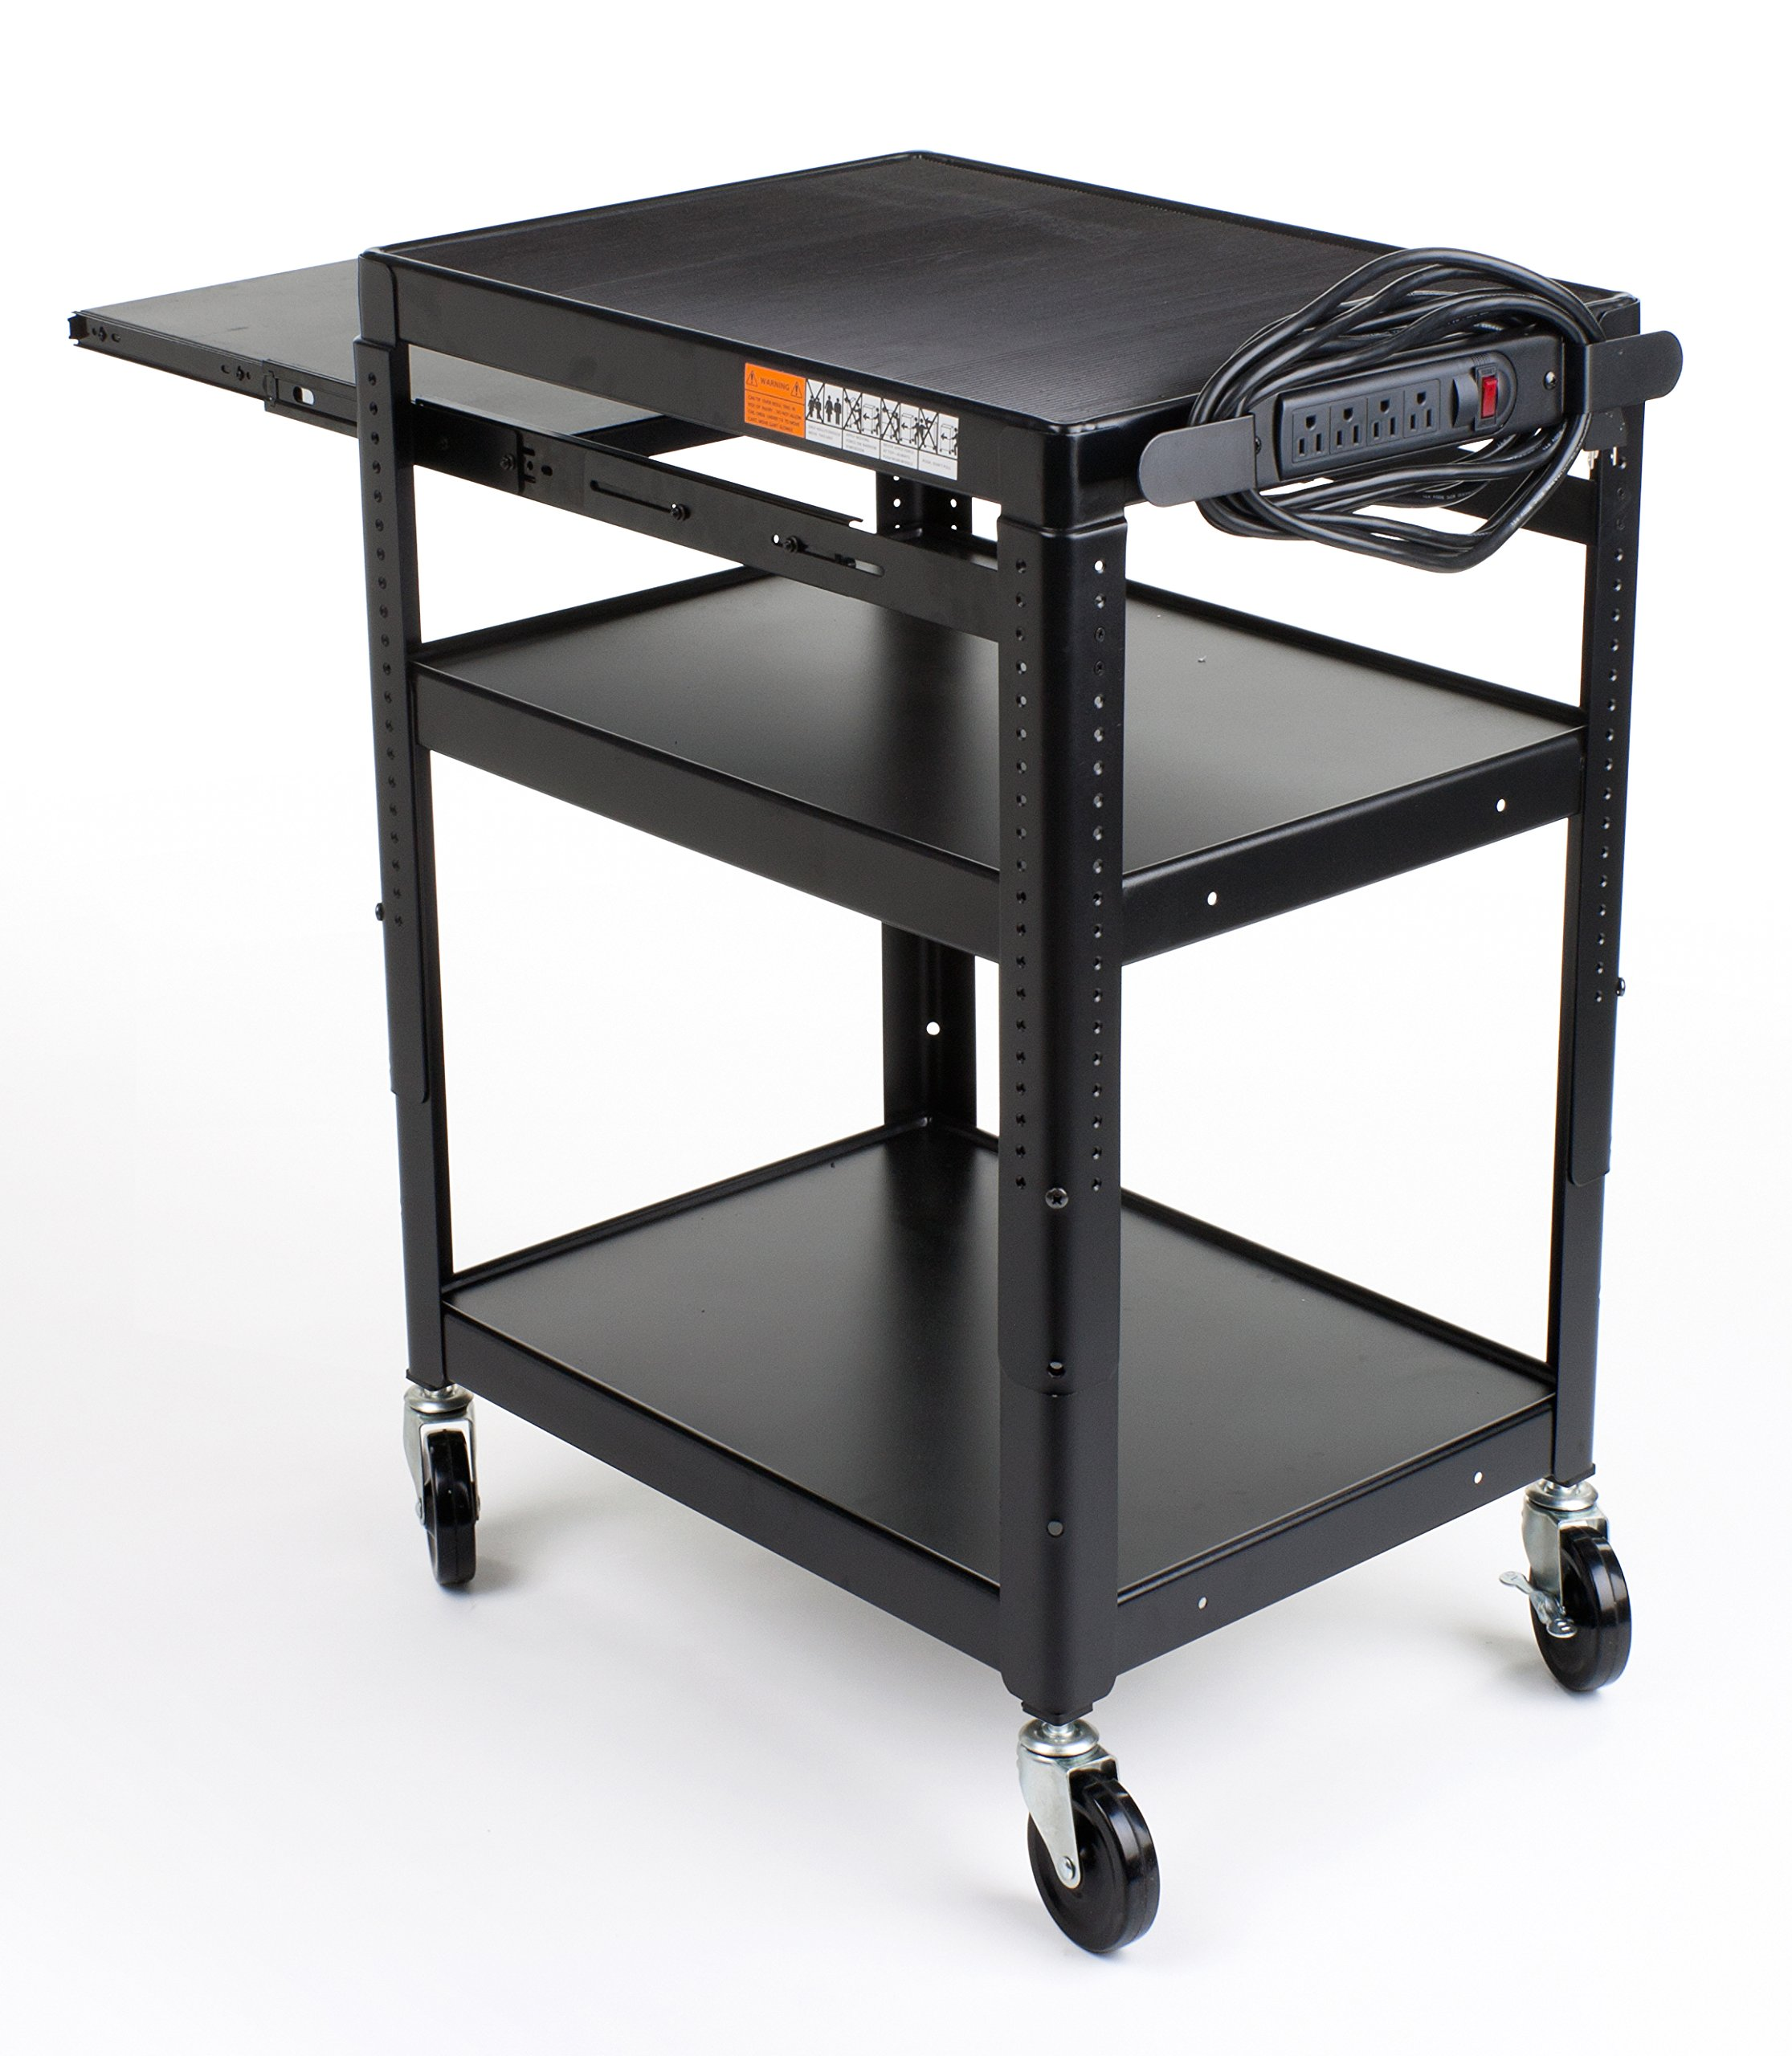 Displays2go Media Cart with Extendable Tray, Height-Adjustable Shelf, Anti-Slip Pad, 4 Wheels, 4 Outlet Surge Protector, 23 x 43 x 17 Inches, Black Powder-Coated Steel (LMC3S1PB2) by Displays2go